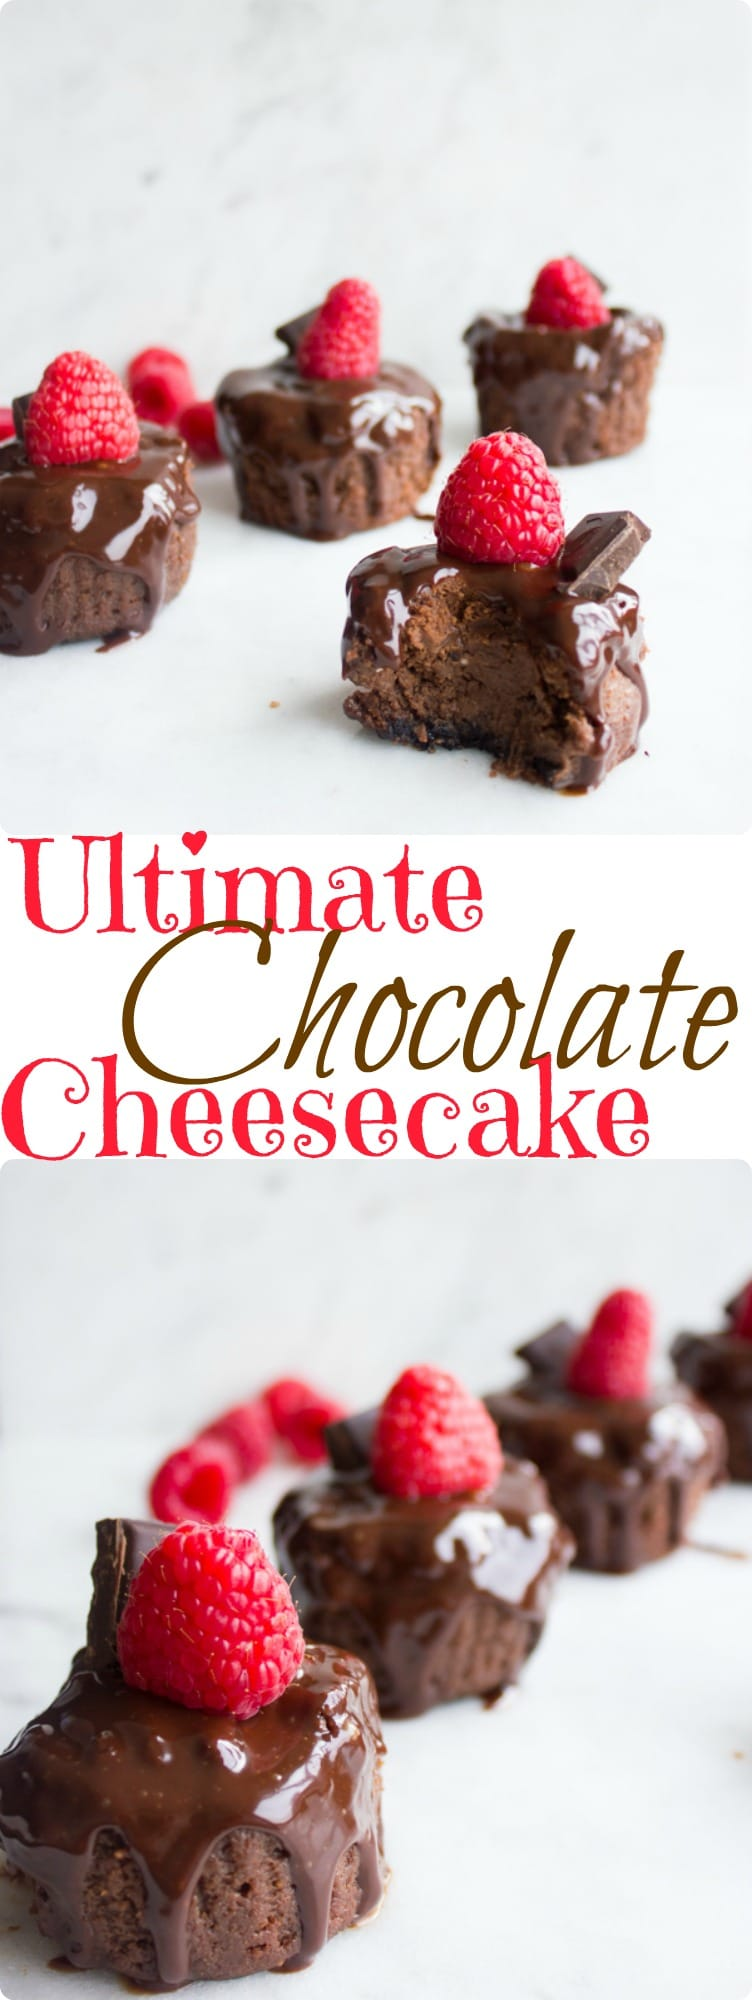 This ultimate chocolate cheesecake recipe is a chocolate lover's dream. It has a rich chocolatey taste and a luscious creamy texture. Made with low-fat cream cheese and light sour cream, it has fewer calories than regular cheesecake but tastes just as decadent as you'd expect of a chocolate dessert. #dessert, #chocolate, #cheesecake, #bitesized, #partyfood, #petitfour